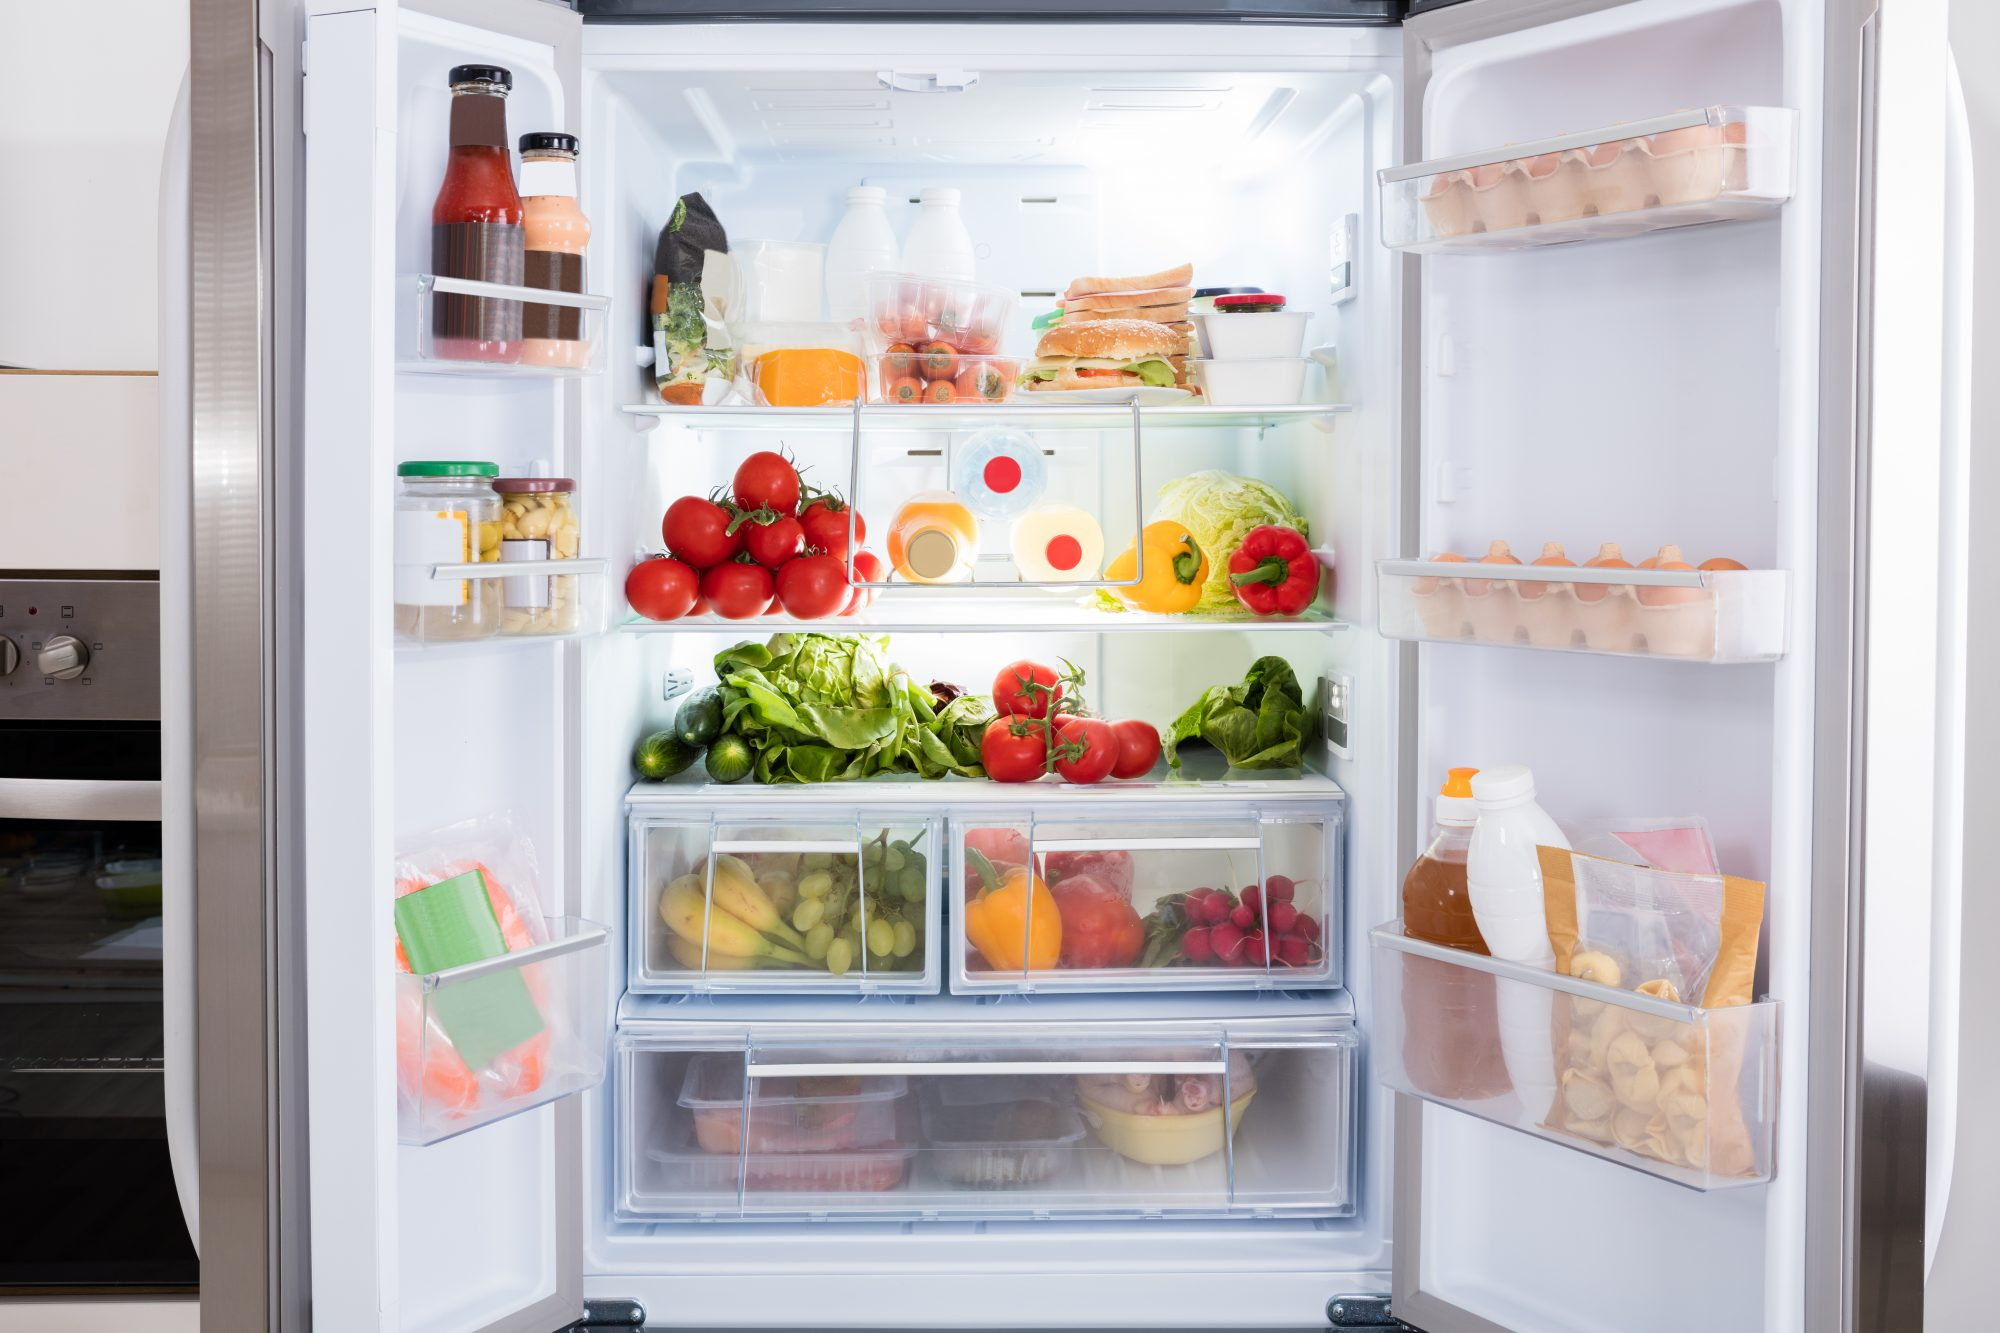 How to Organize Your Fridge for the Holidays